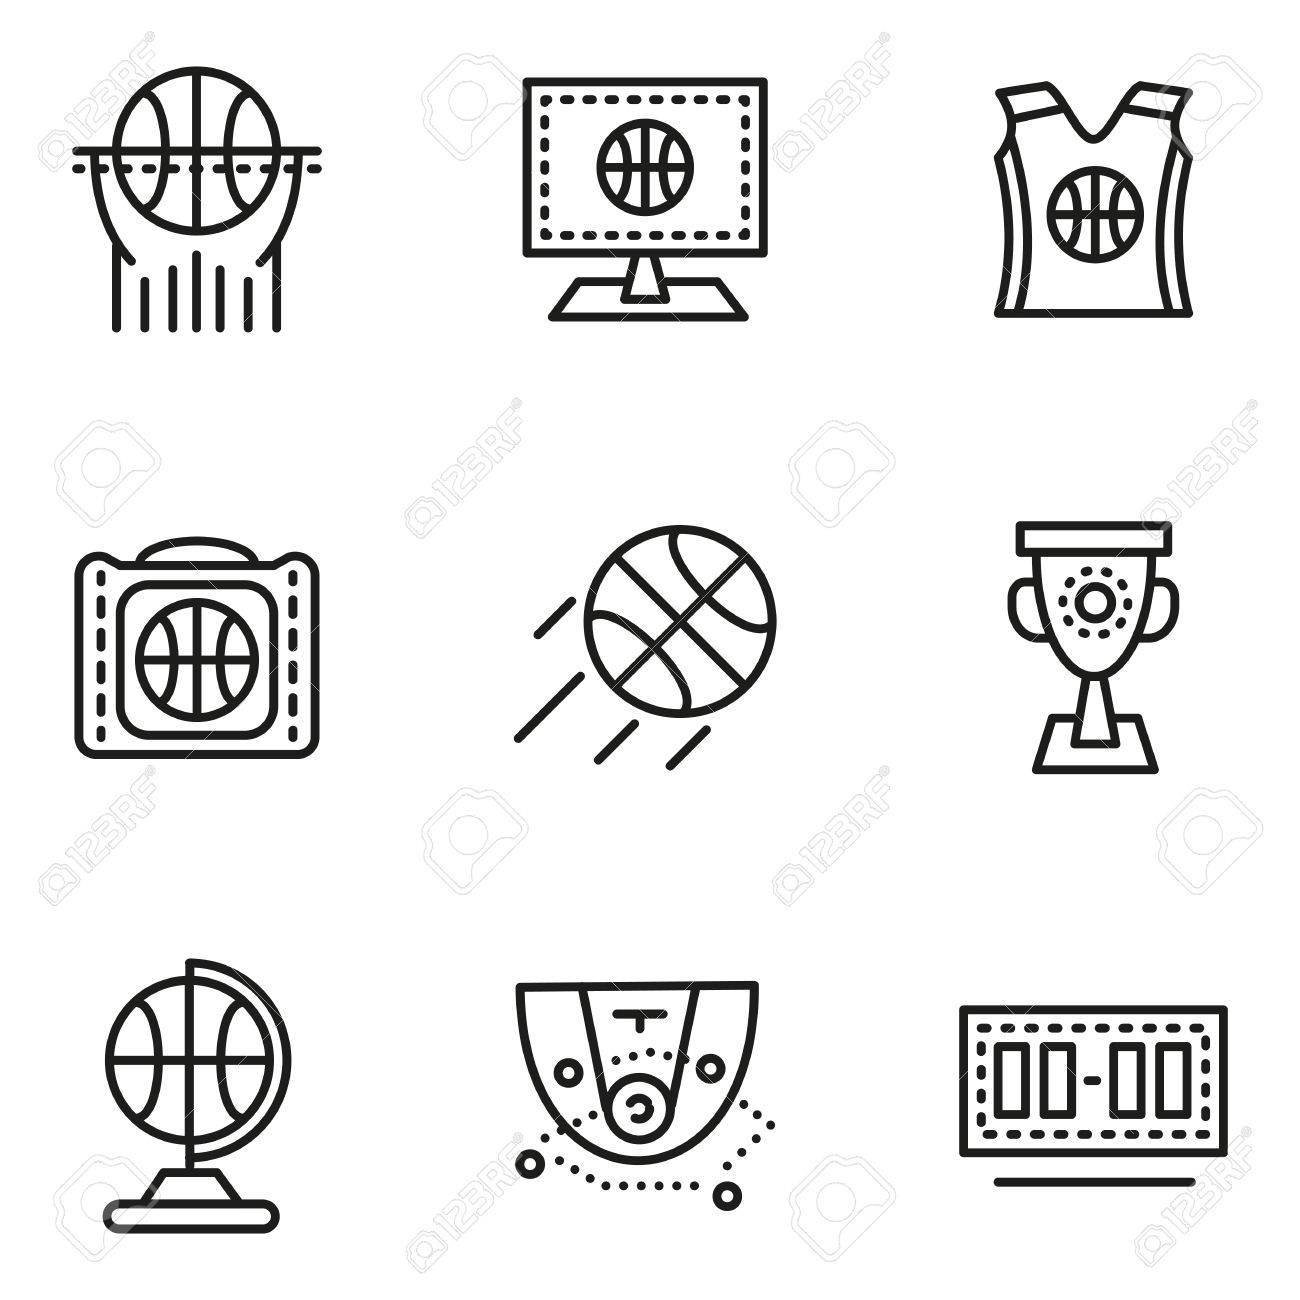 Set of black simple line vector icons for basketball scoreboard set of black simple line vector icons for basketball scoreboard game tactics cup biocorpaavc Choice Image